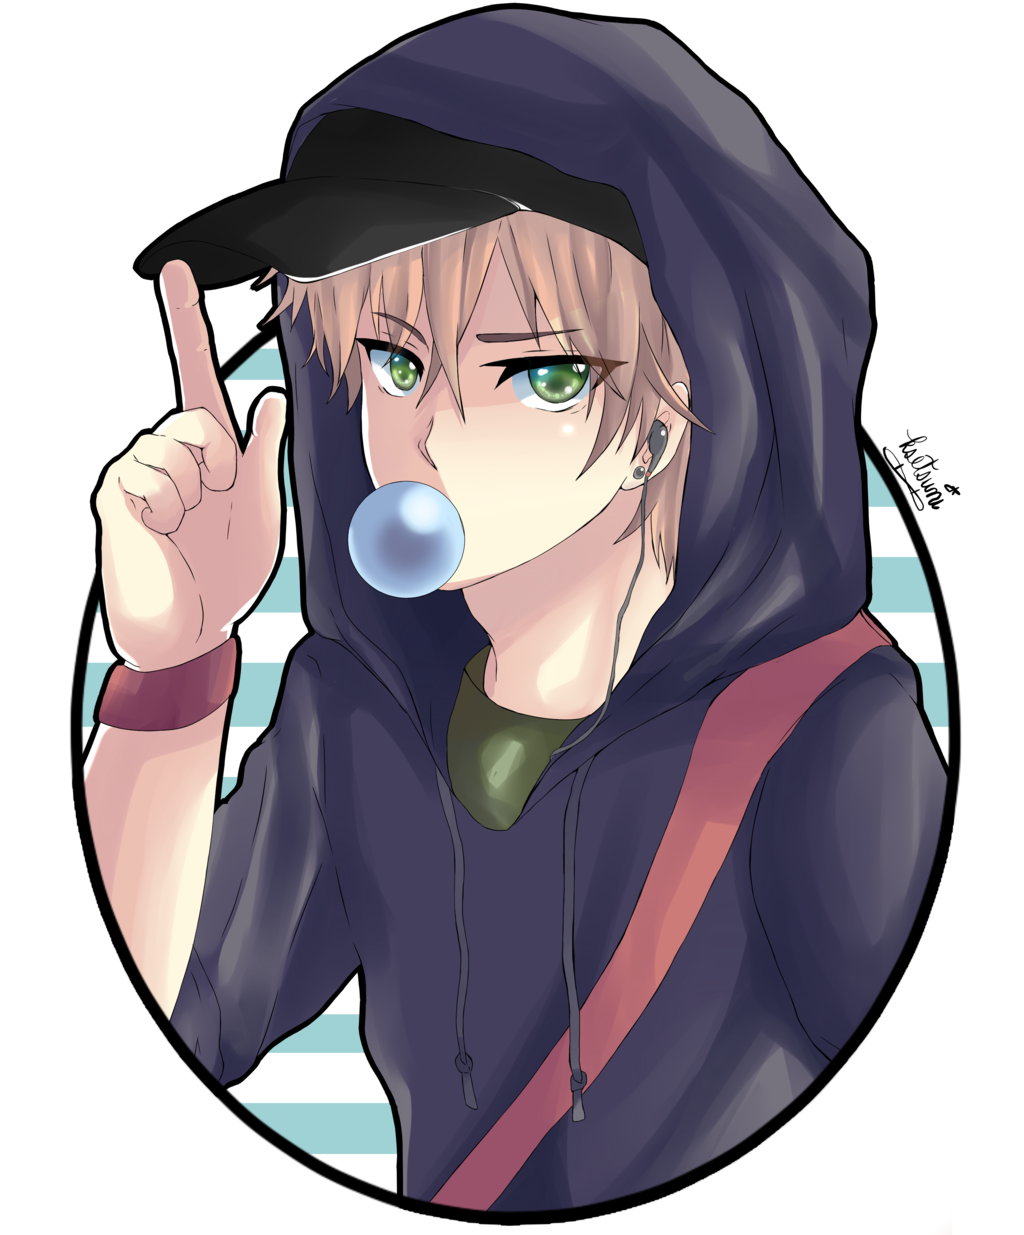 Png anime boy. Cut out transparentpng